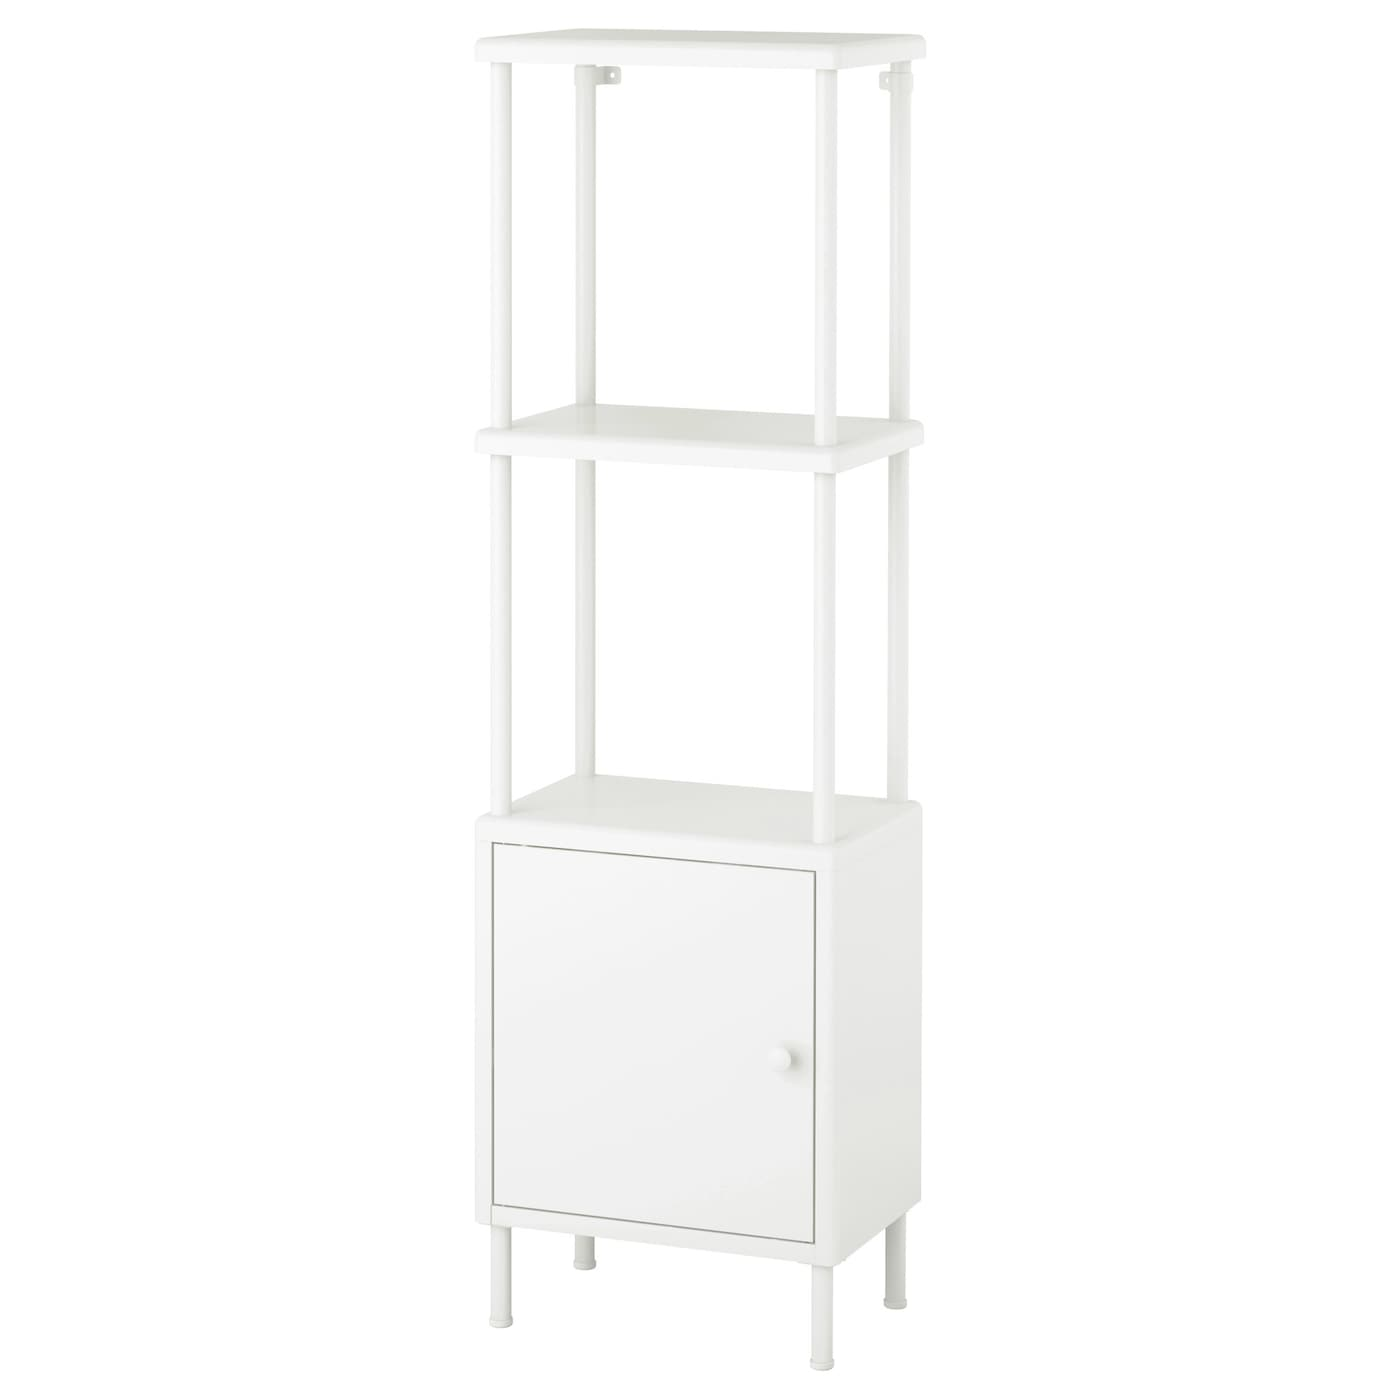 IKEA DYNAN shelving unit with cabinet Perfect in a small bathroom.